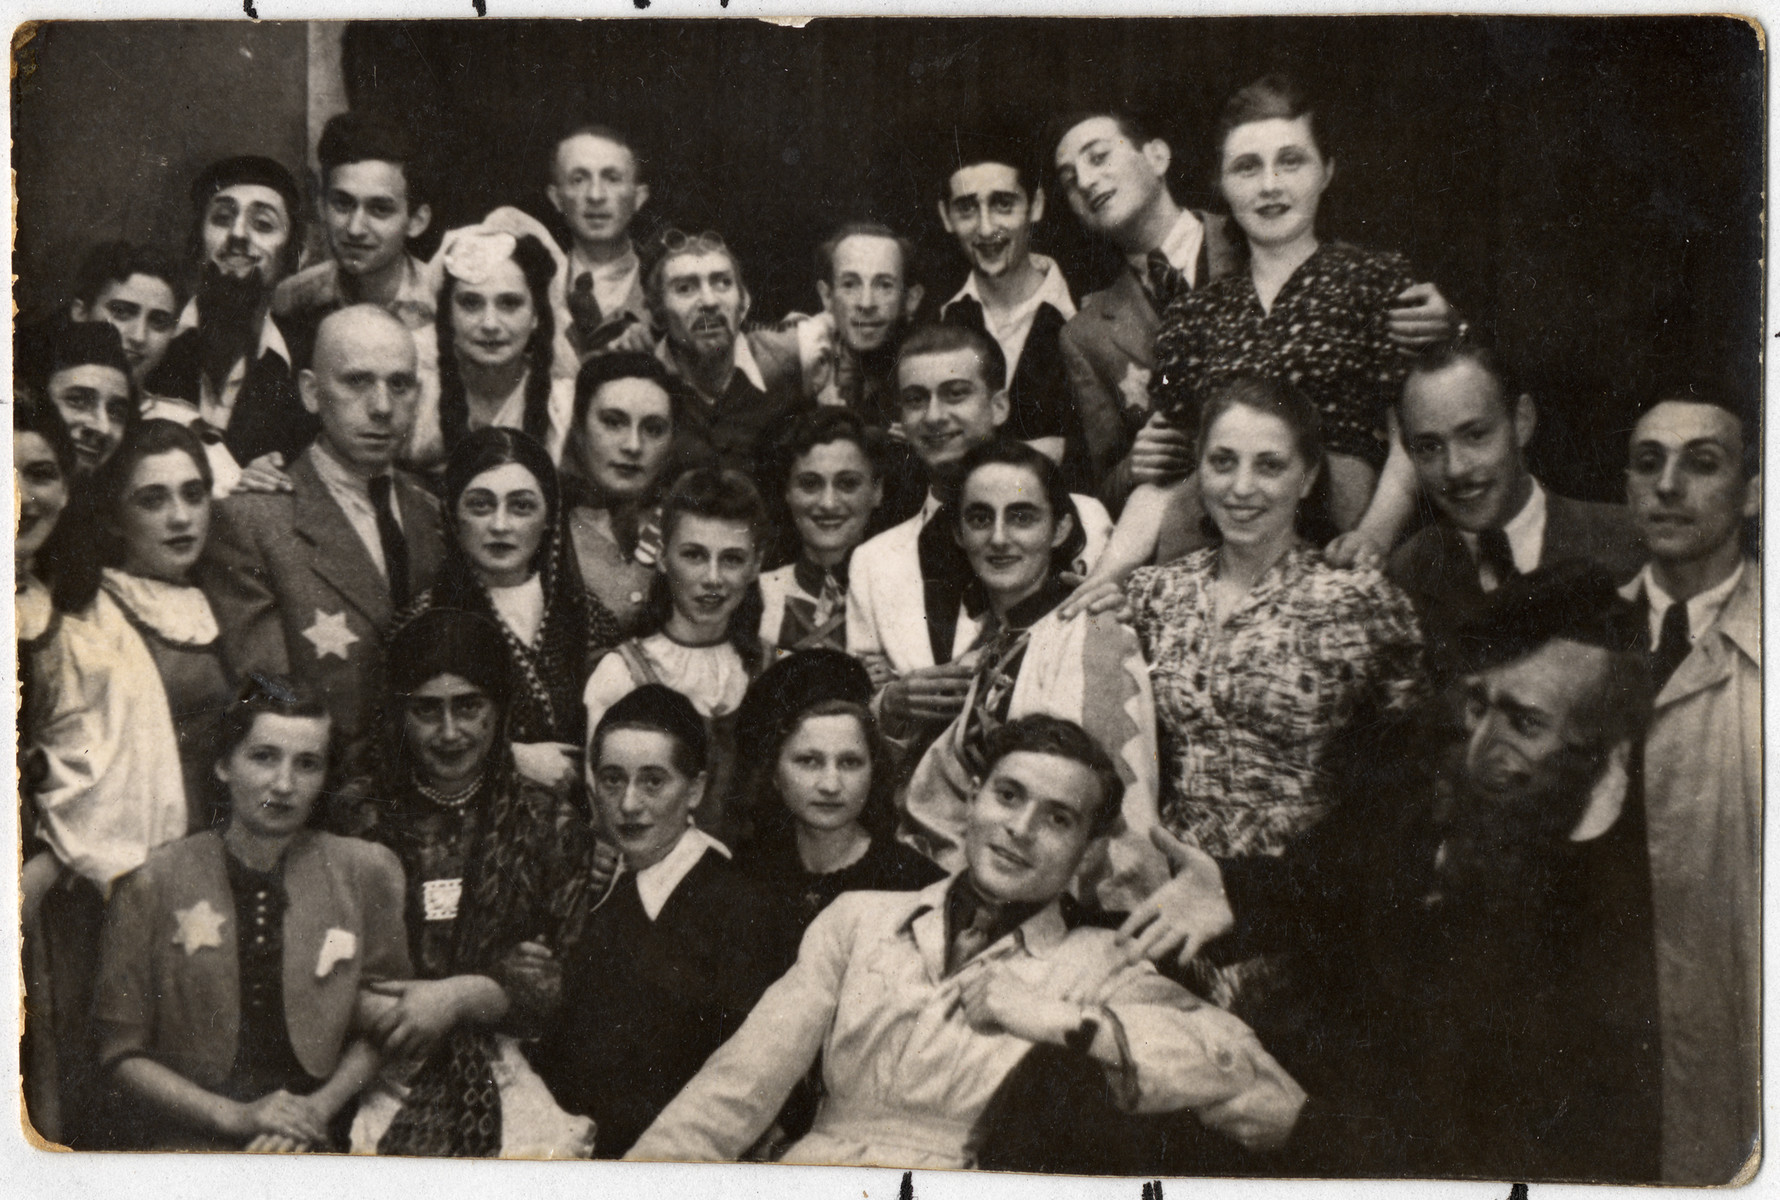 Group portrait of members of a theater group, some in costume, in the Lodz ghetto.   Fifth from the left in the first row may be donor's late husband, Pinchas Szwarc (later Shaar), who designed the stage decorations.